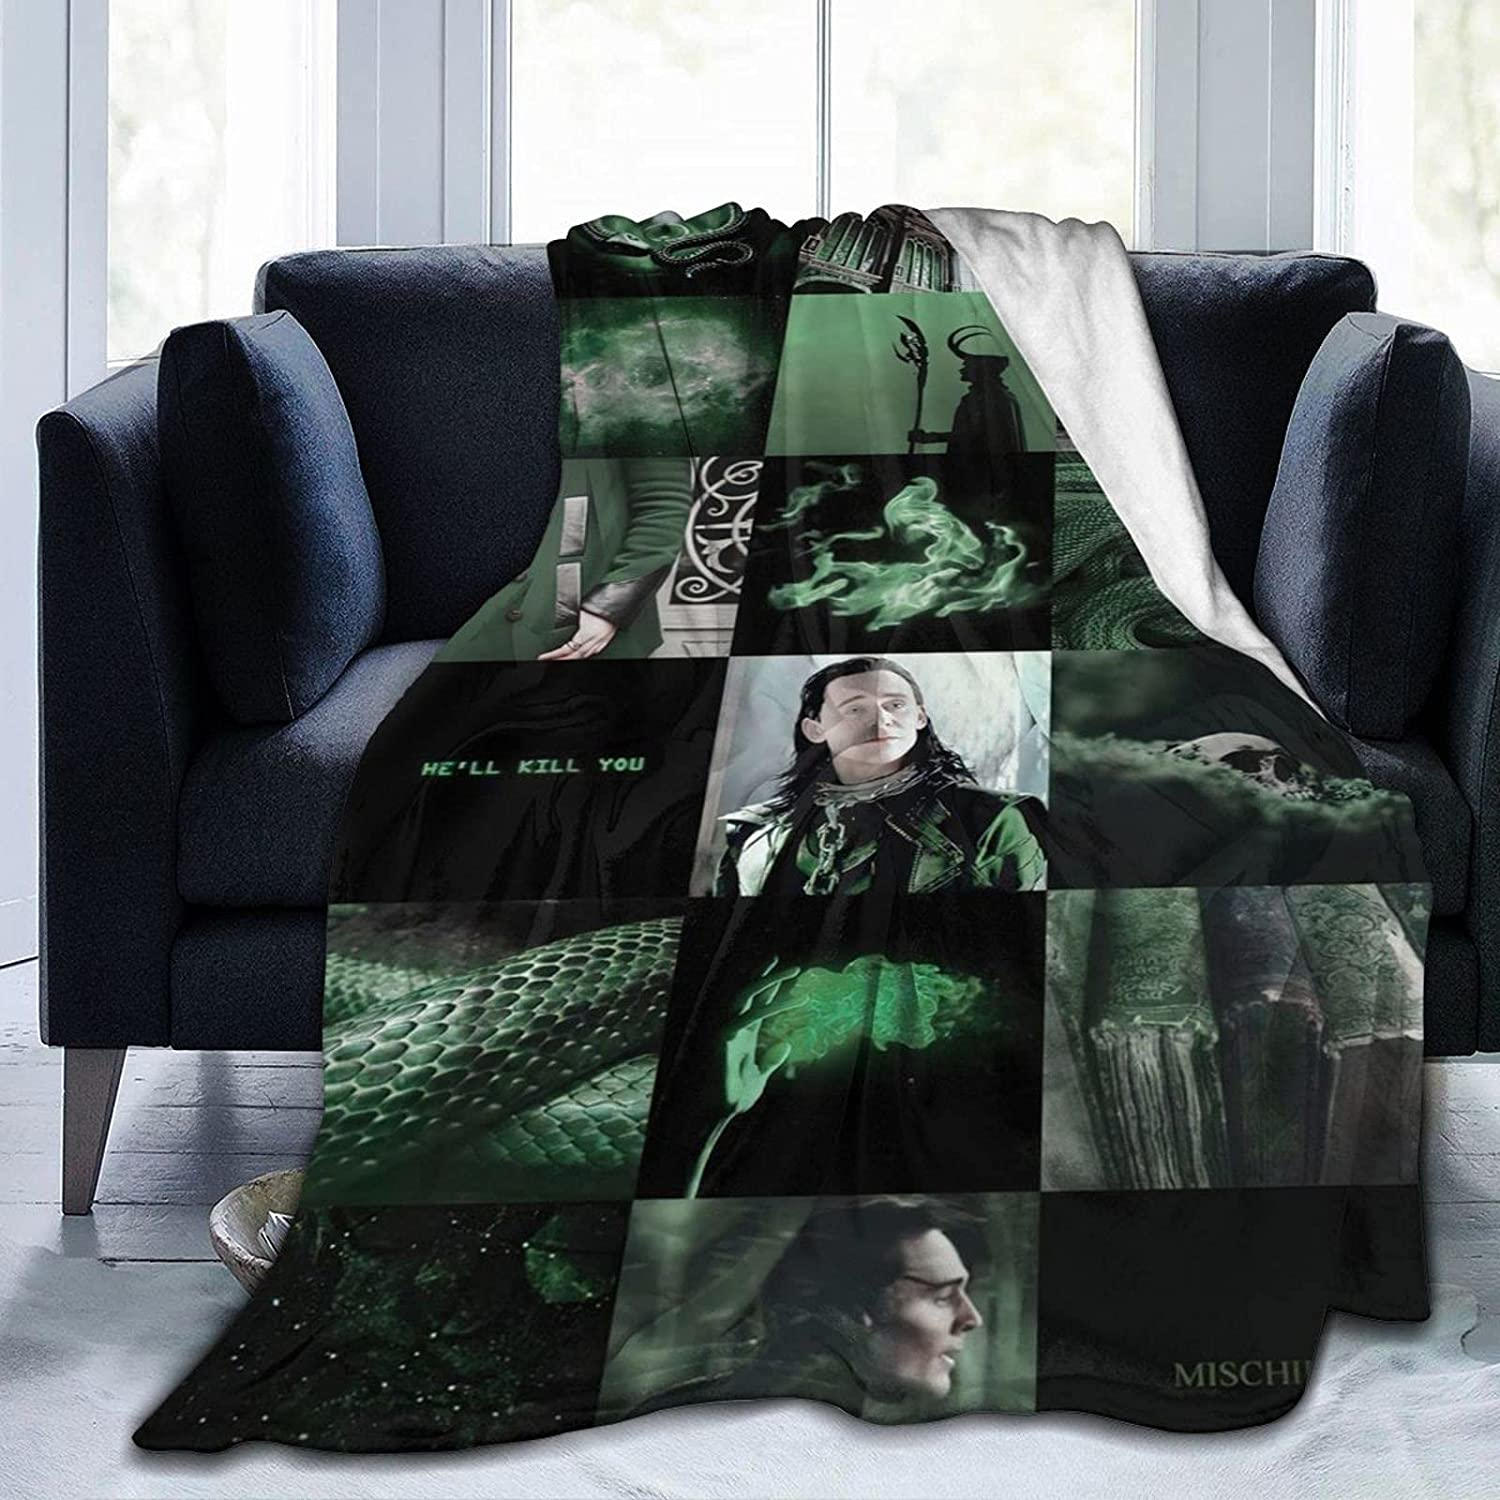 LO-KI Blankets Super Soft Plush Throw L Blanket Bedding Limited time sale Sofa for Super special price